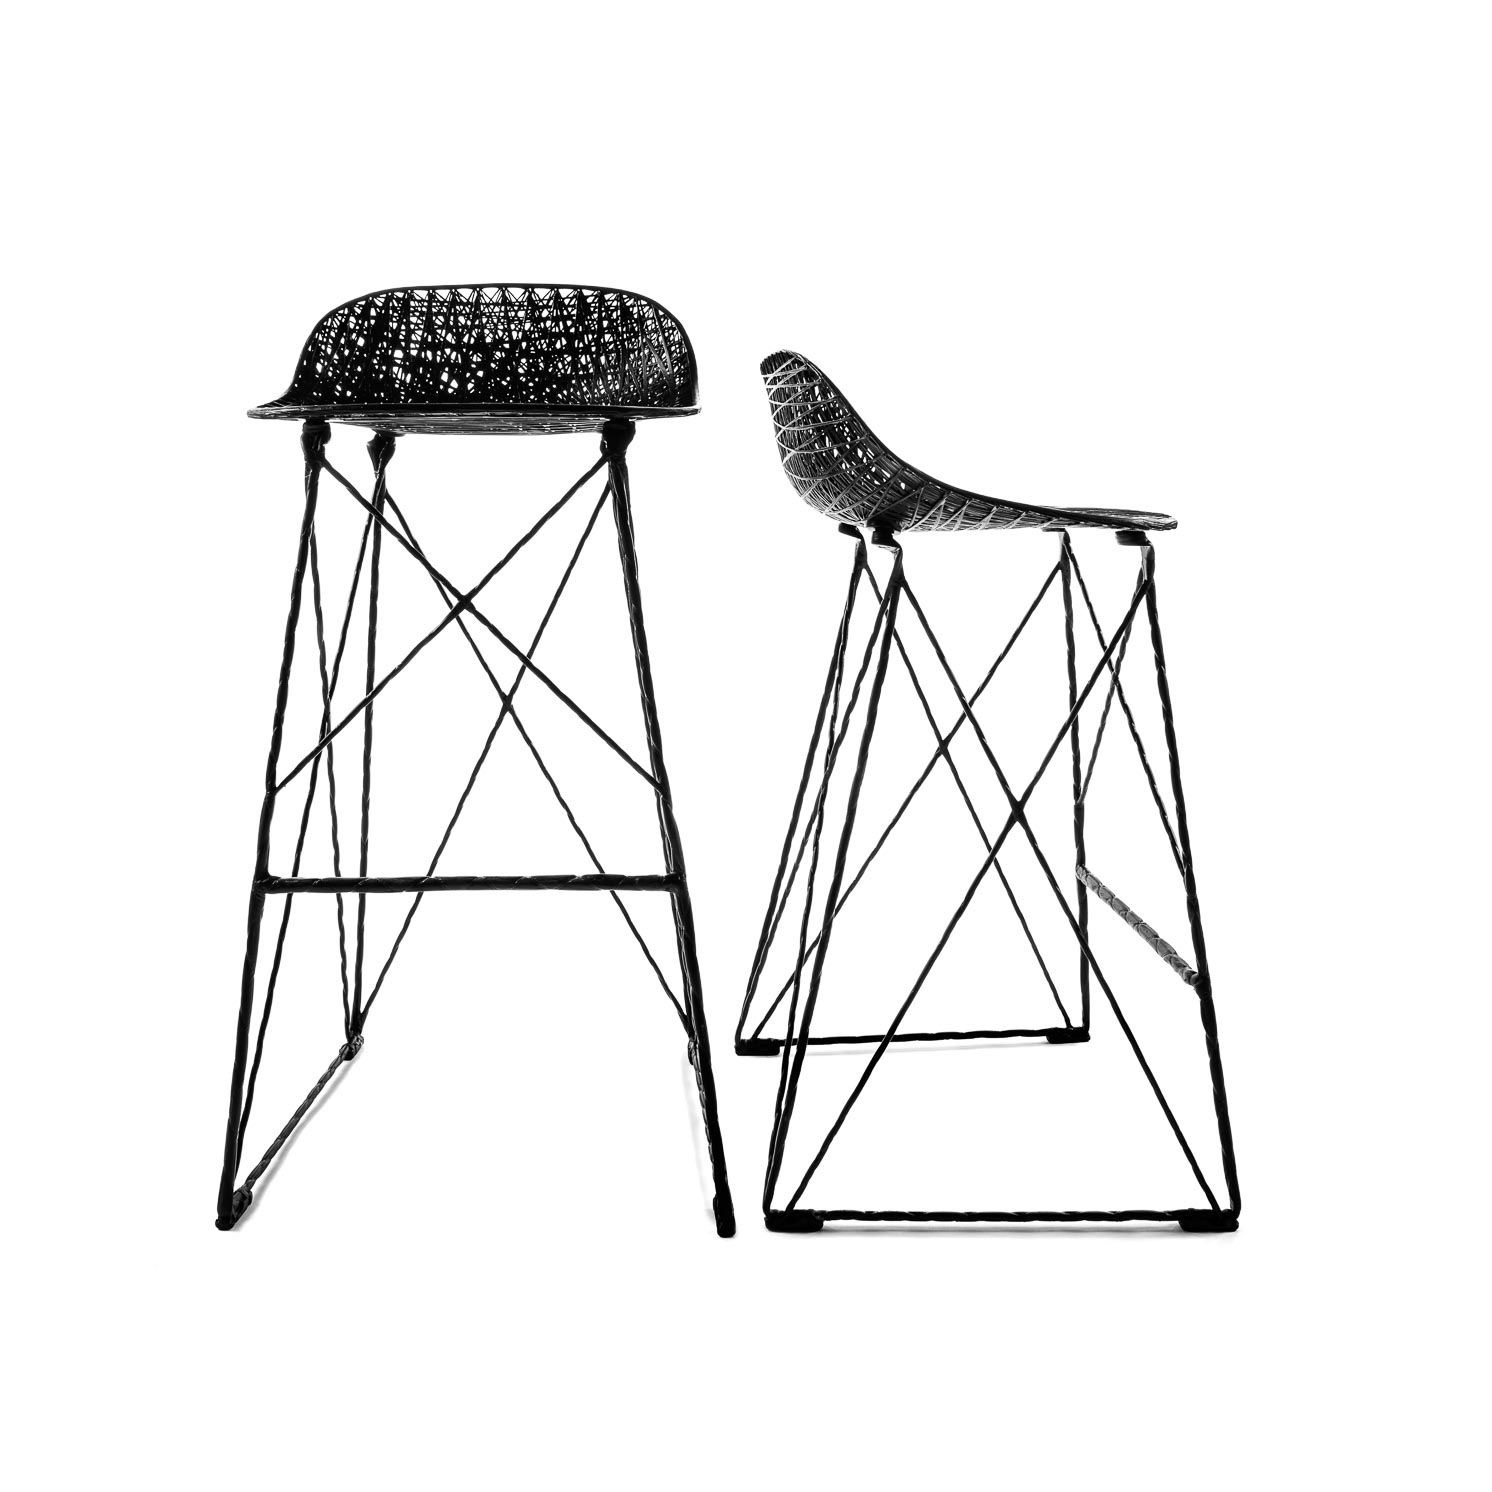 Carbon bar stool 2 units